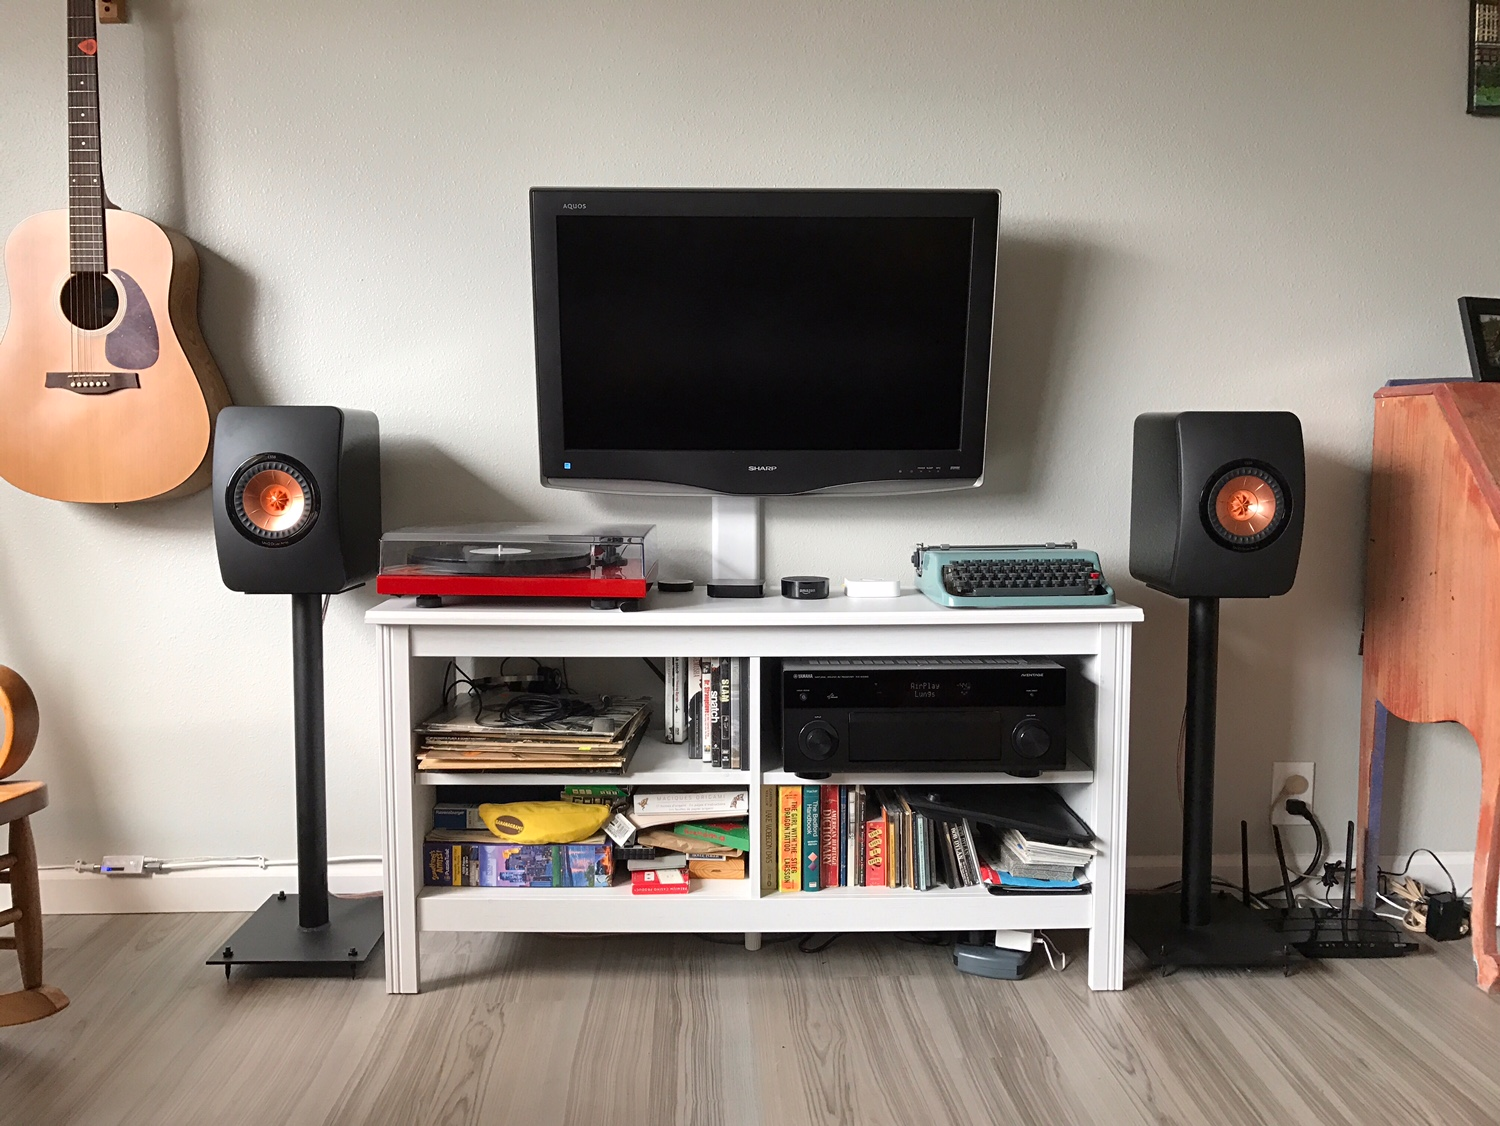 Kailin System:  Yamaha AV receiver, ProJect Debut Carbon turntable/Ortofon Red, KEF LS50 speakers, GHA custom speaker stands.